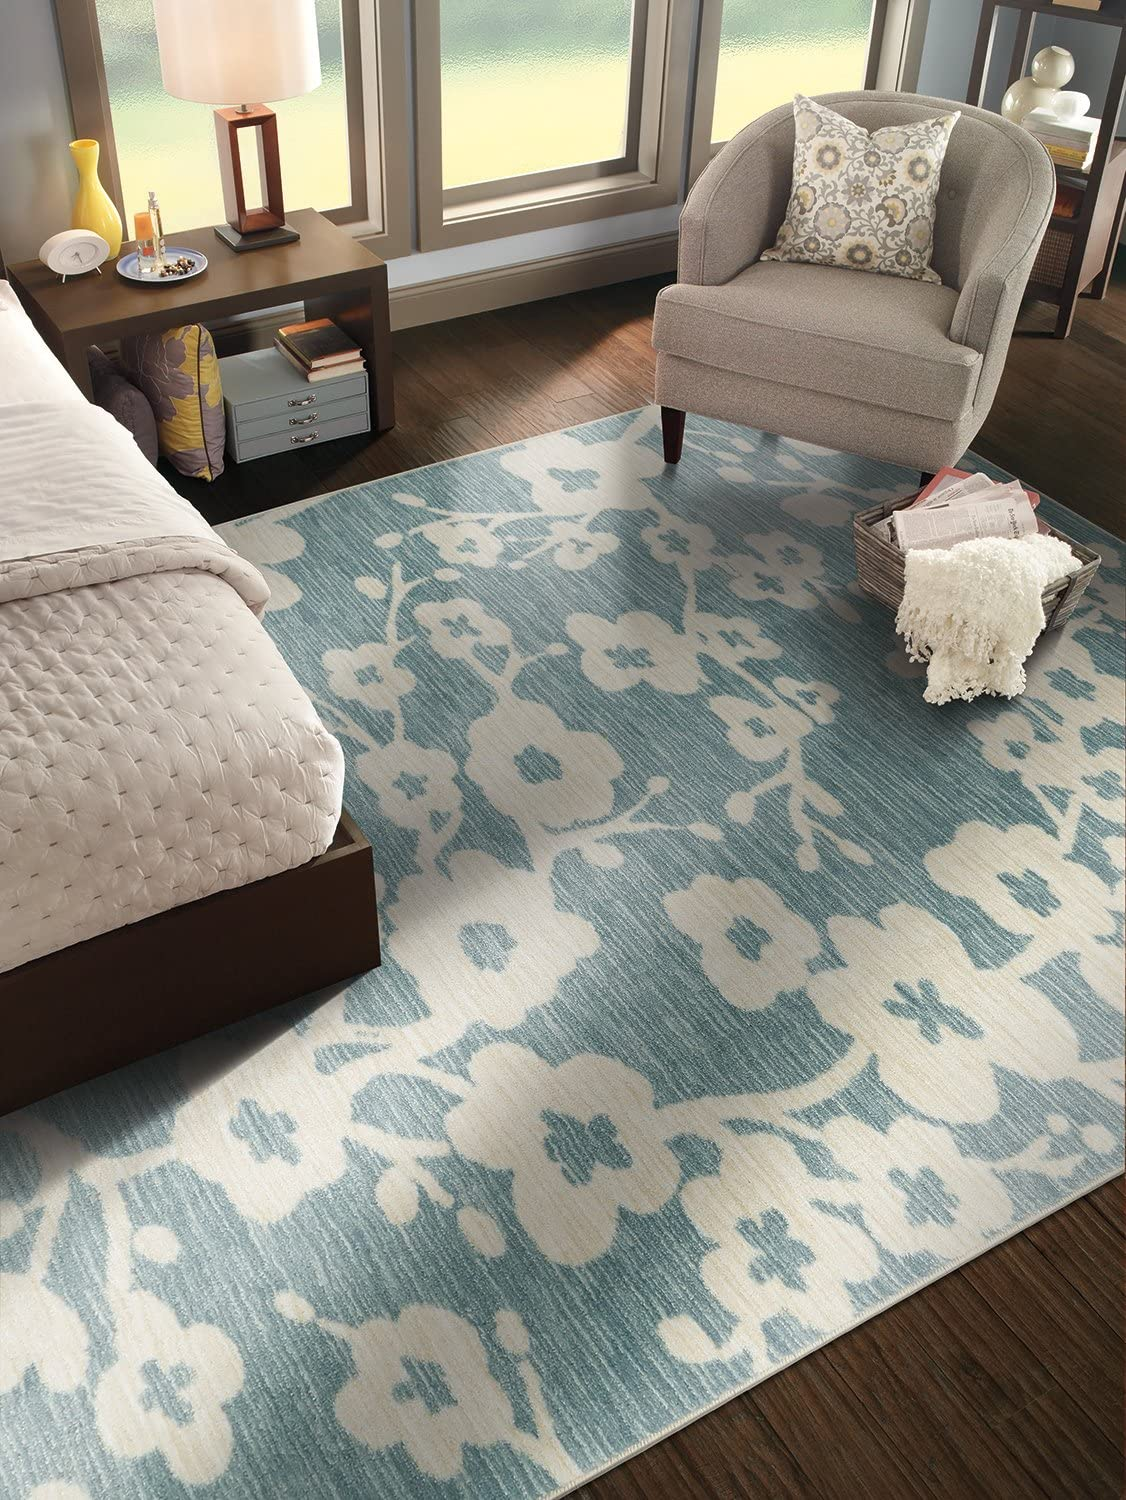 Mohawk OFFer Home Aurora Burbank Wholesale Blossom 7'6x Rug Floral Area Printed